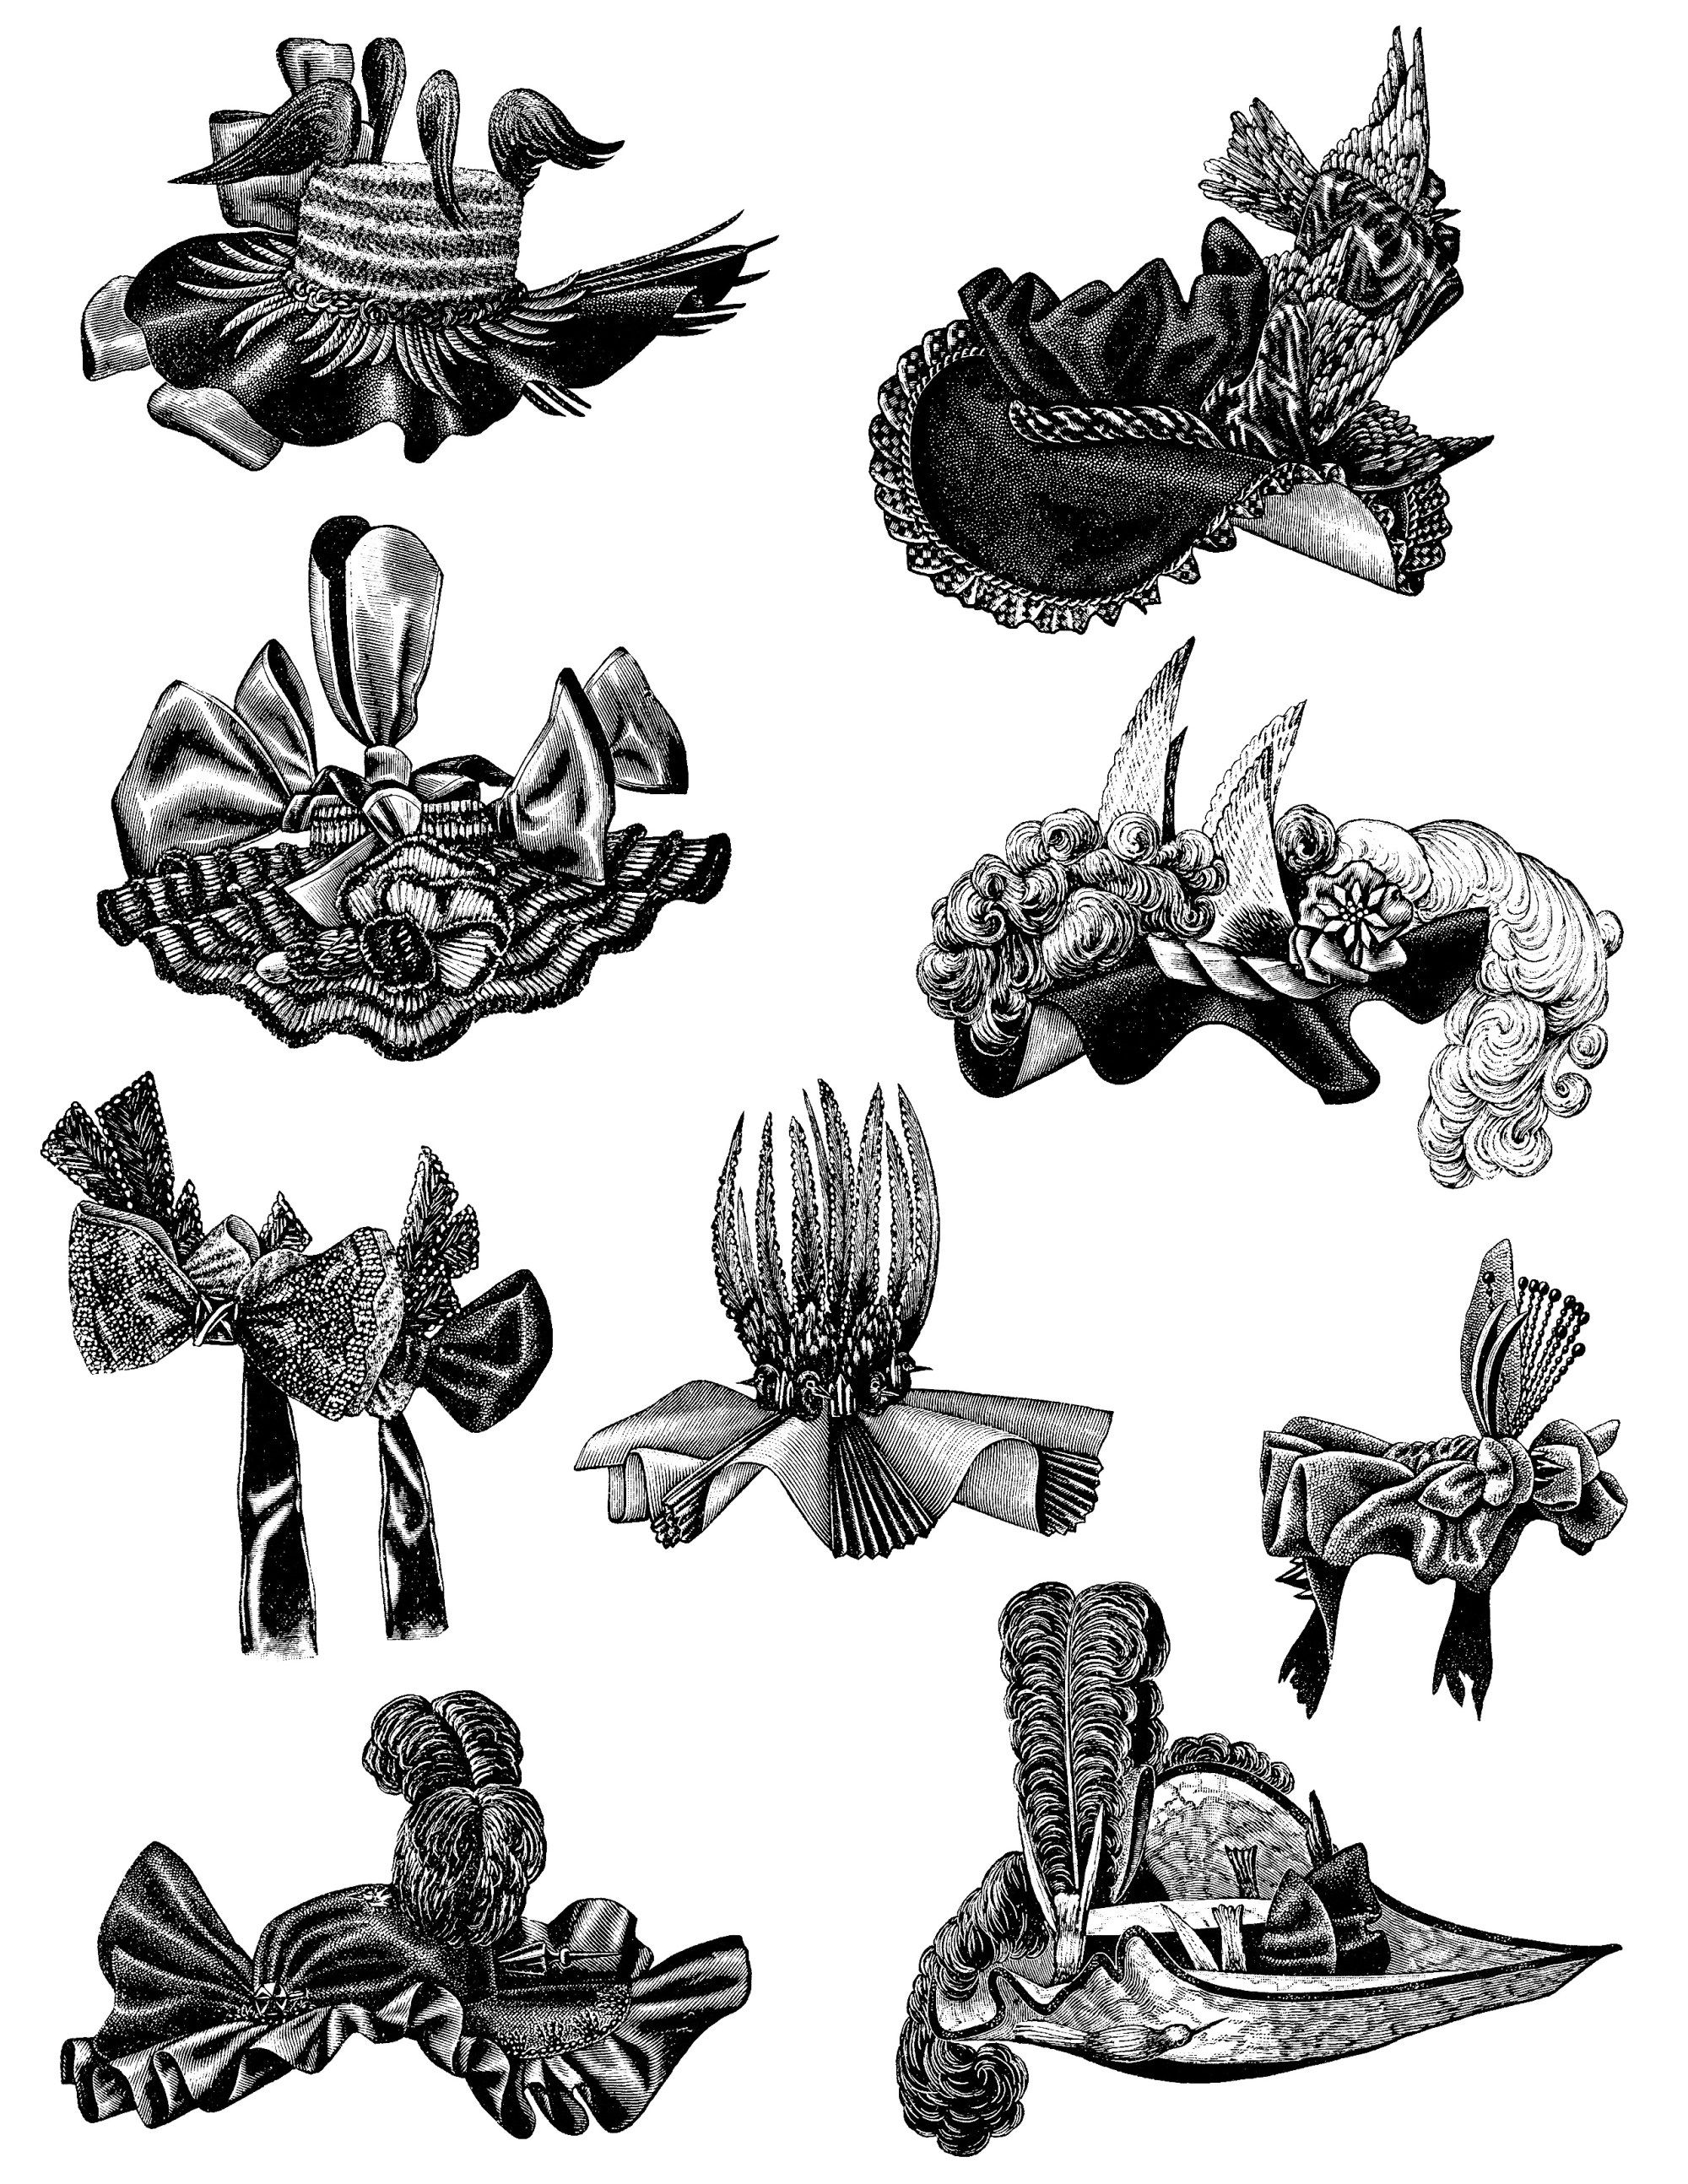 472ddd1db vintage hat clip art, black and white graphics, Victorian ladies hat, old  fashioned hat illustration, Victorian millinery fashion